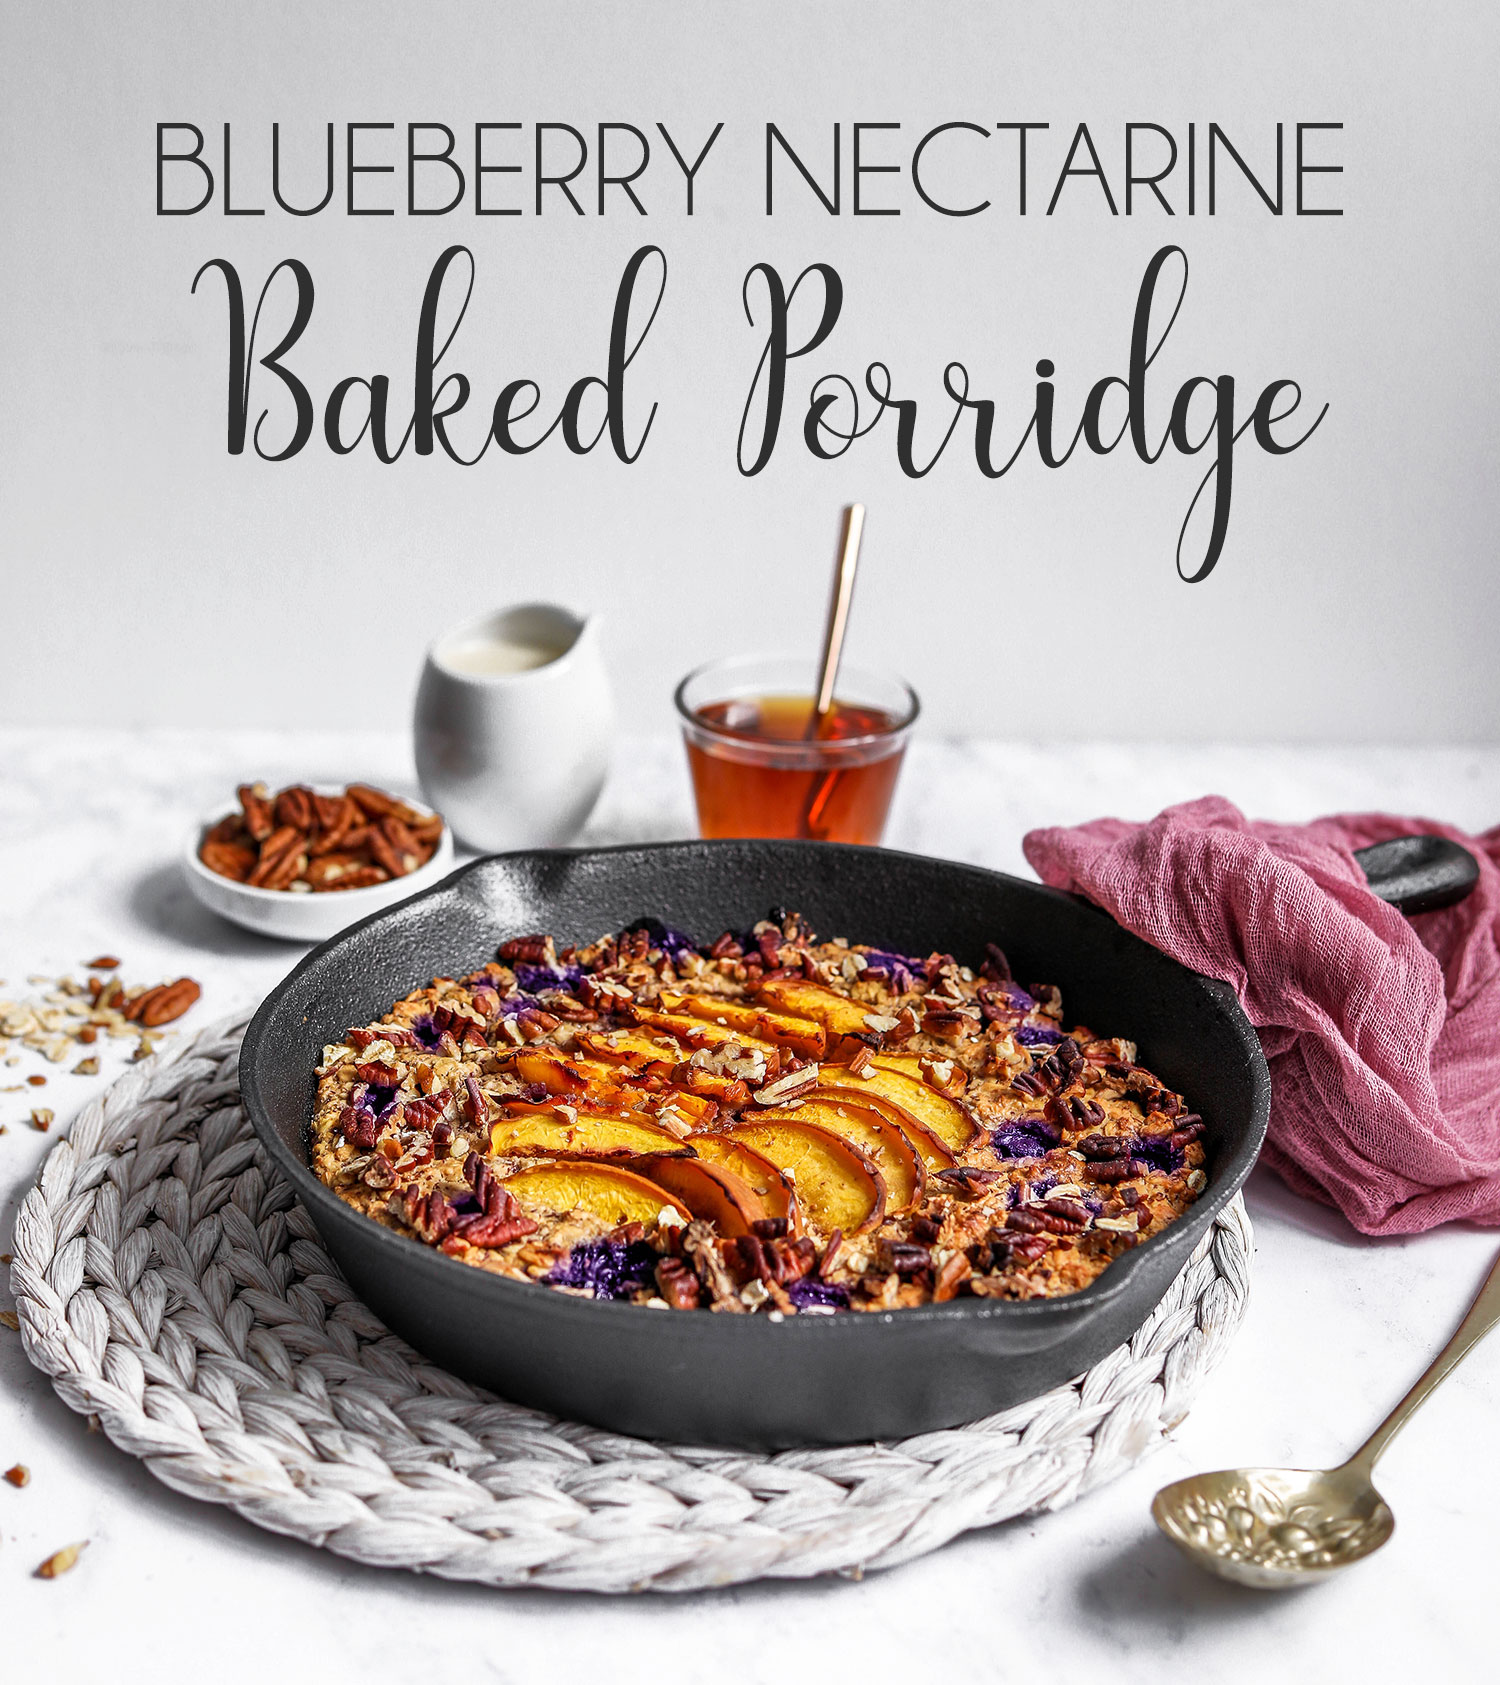 Blueberry Nectarine Baked Porridge